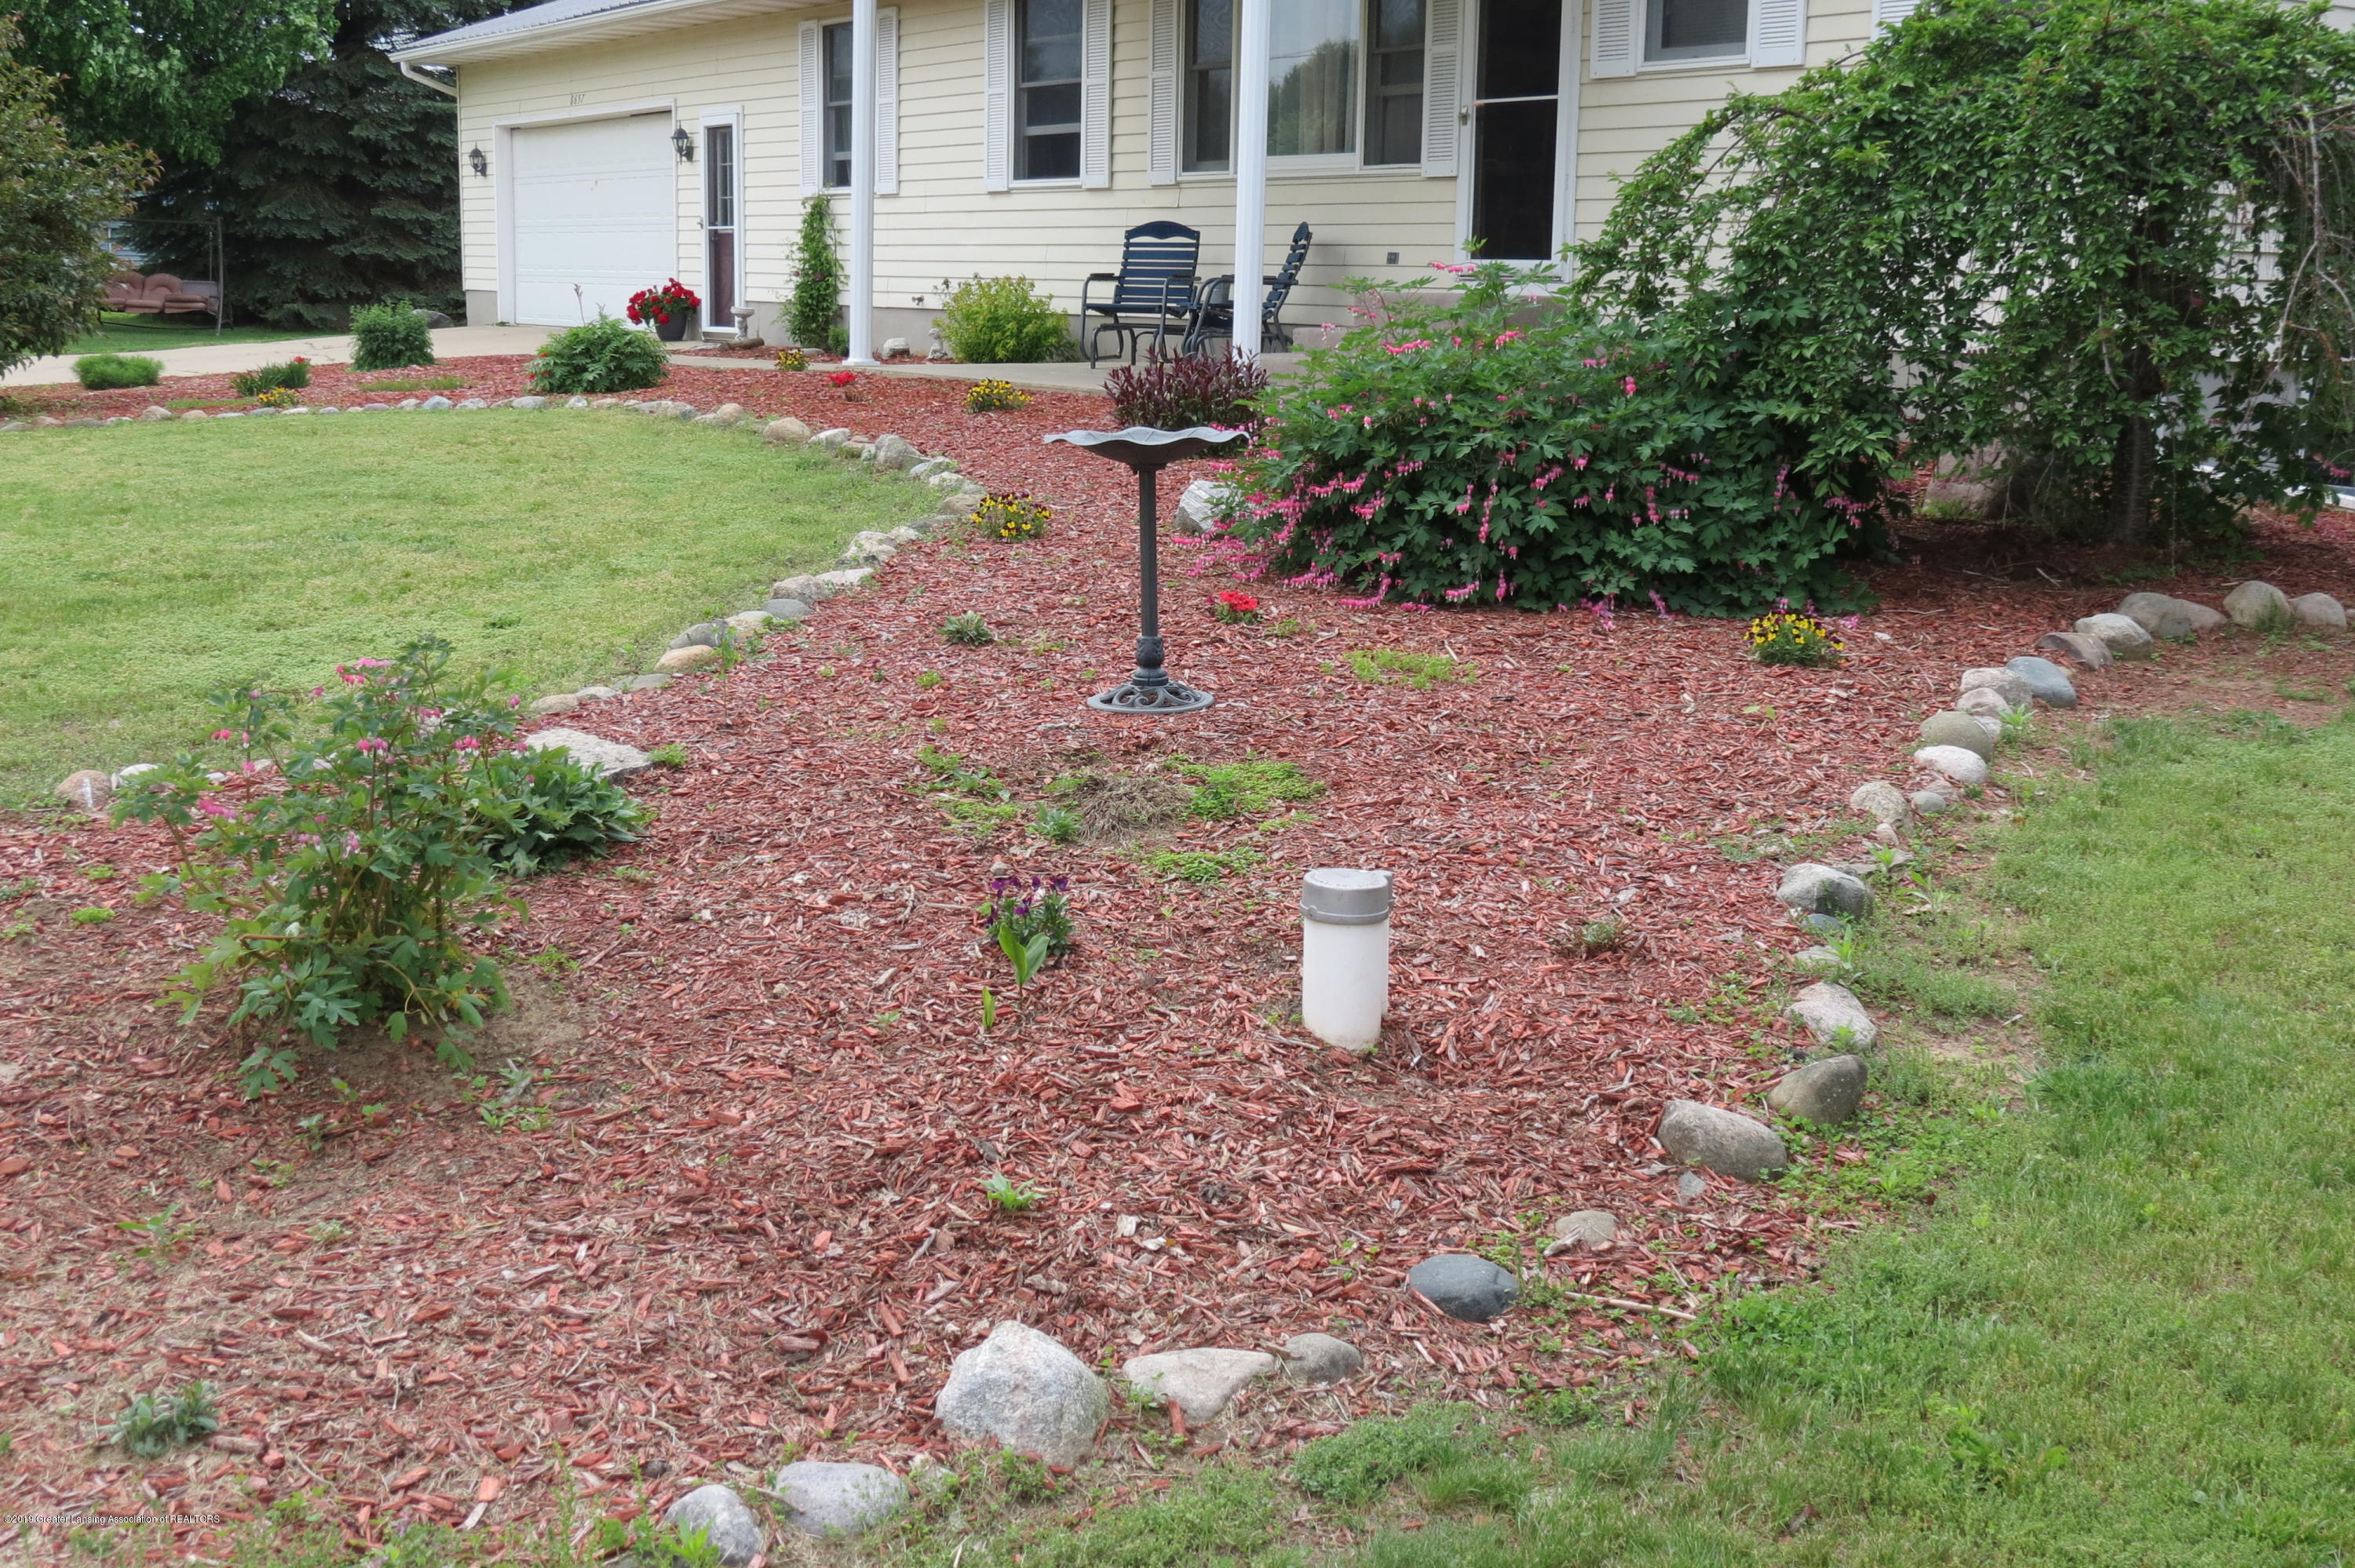 8657 E Maple Rapids Rd - Landscaping - 48